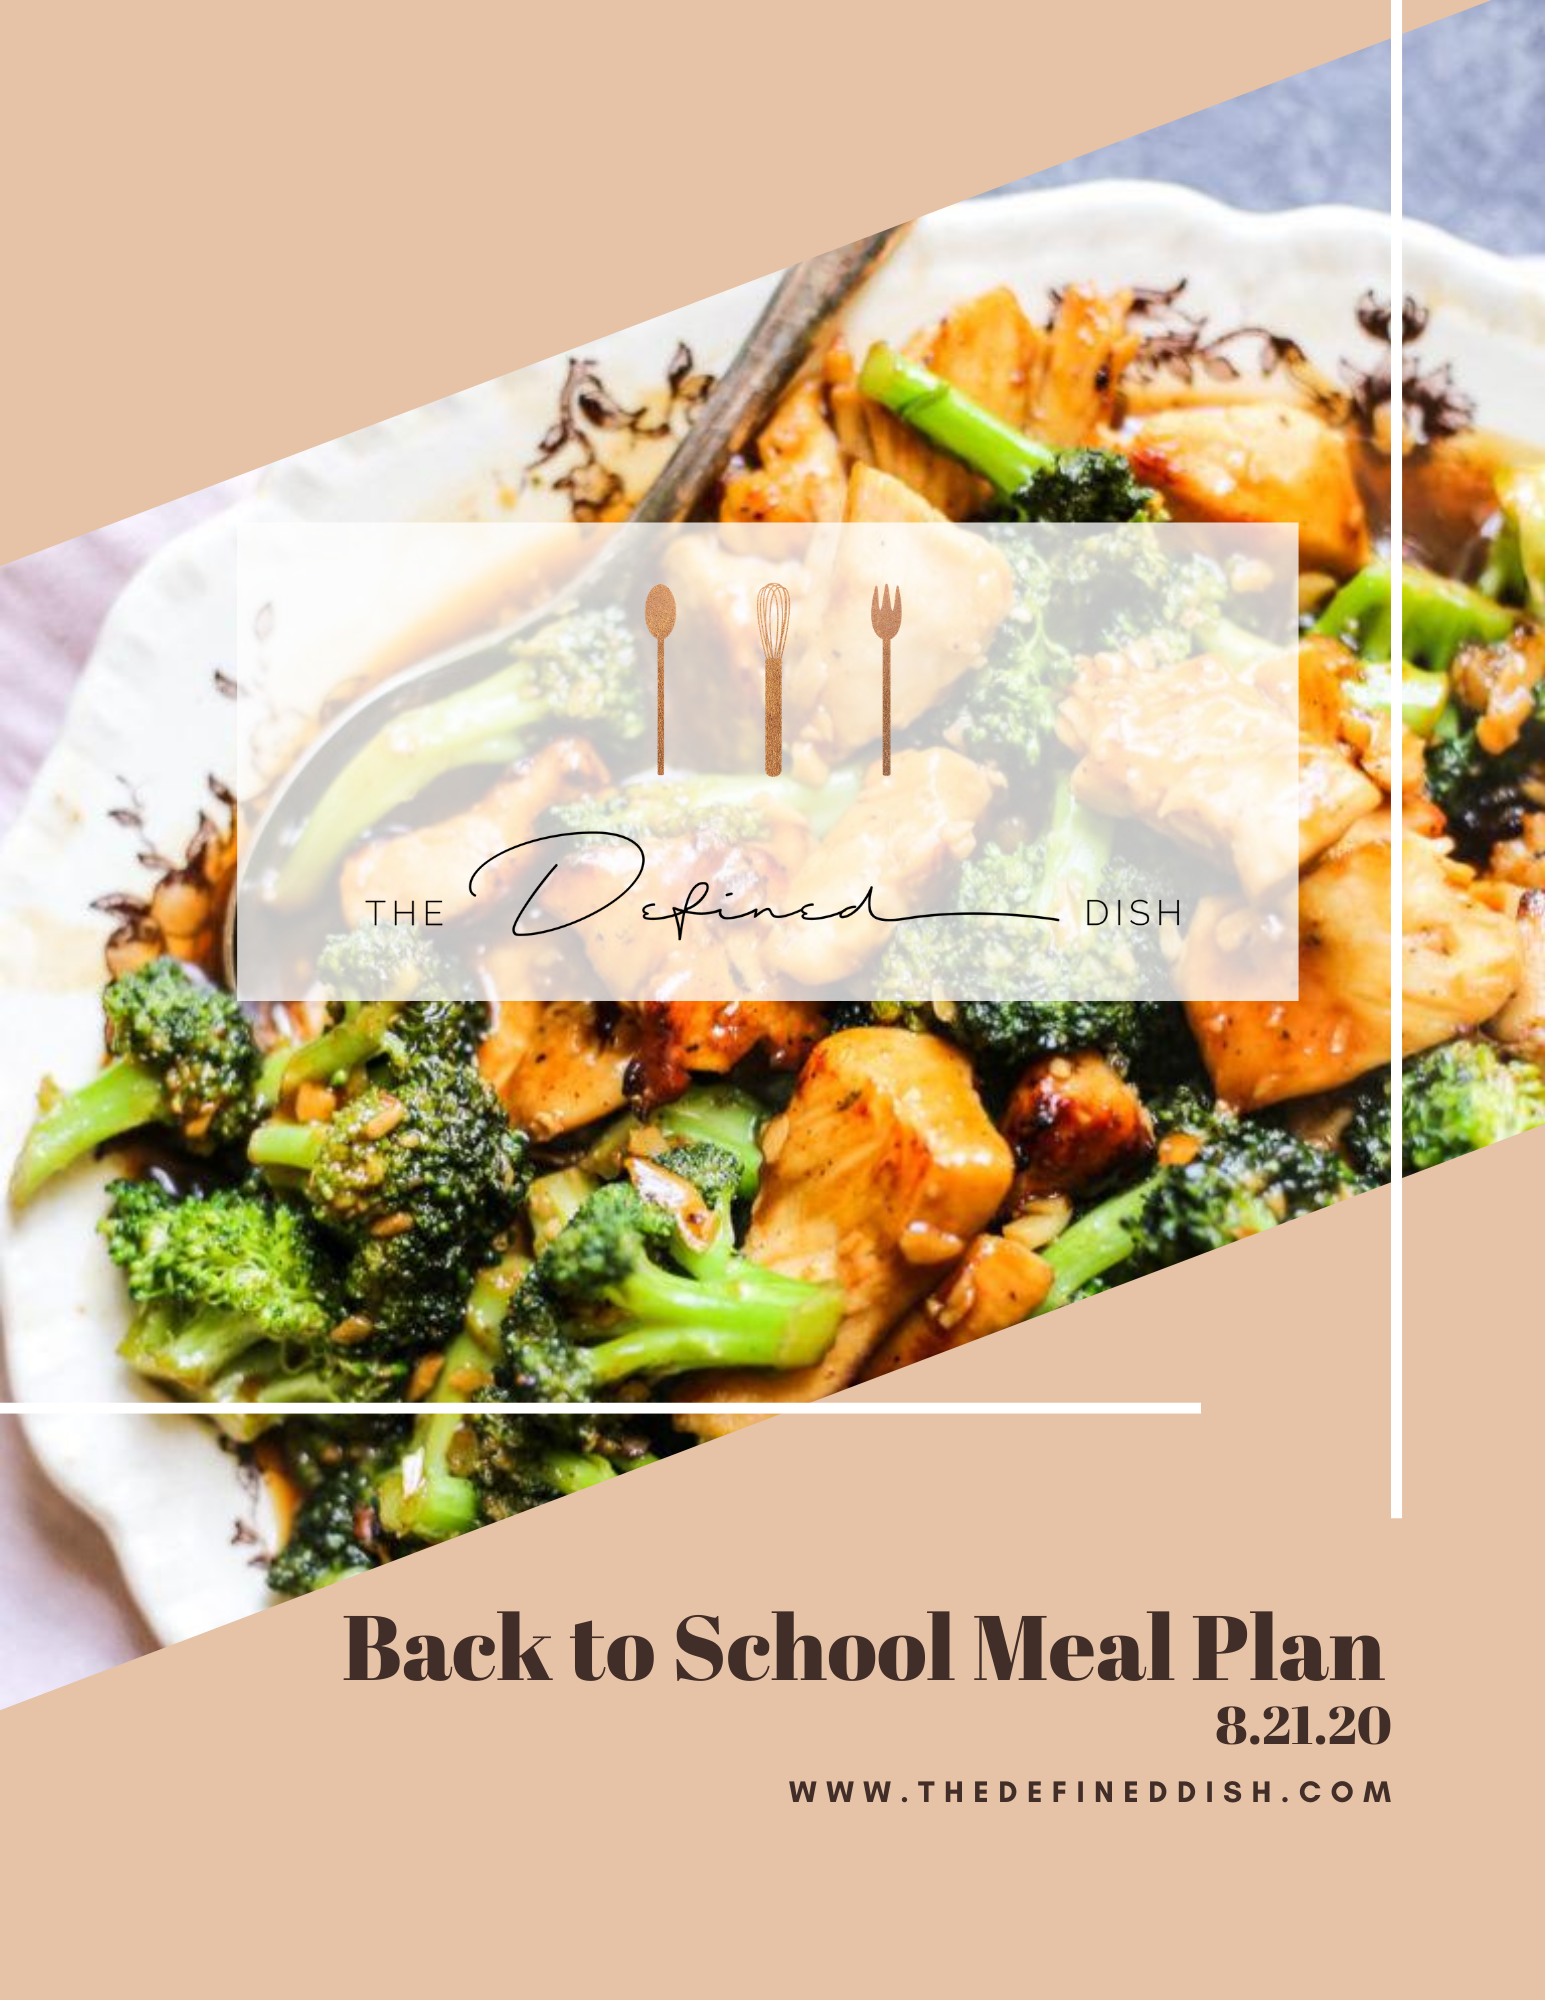 Back to School Meal Plan [8.21.20]